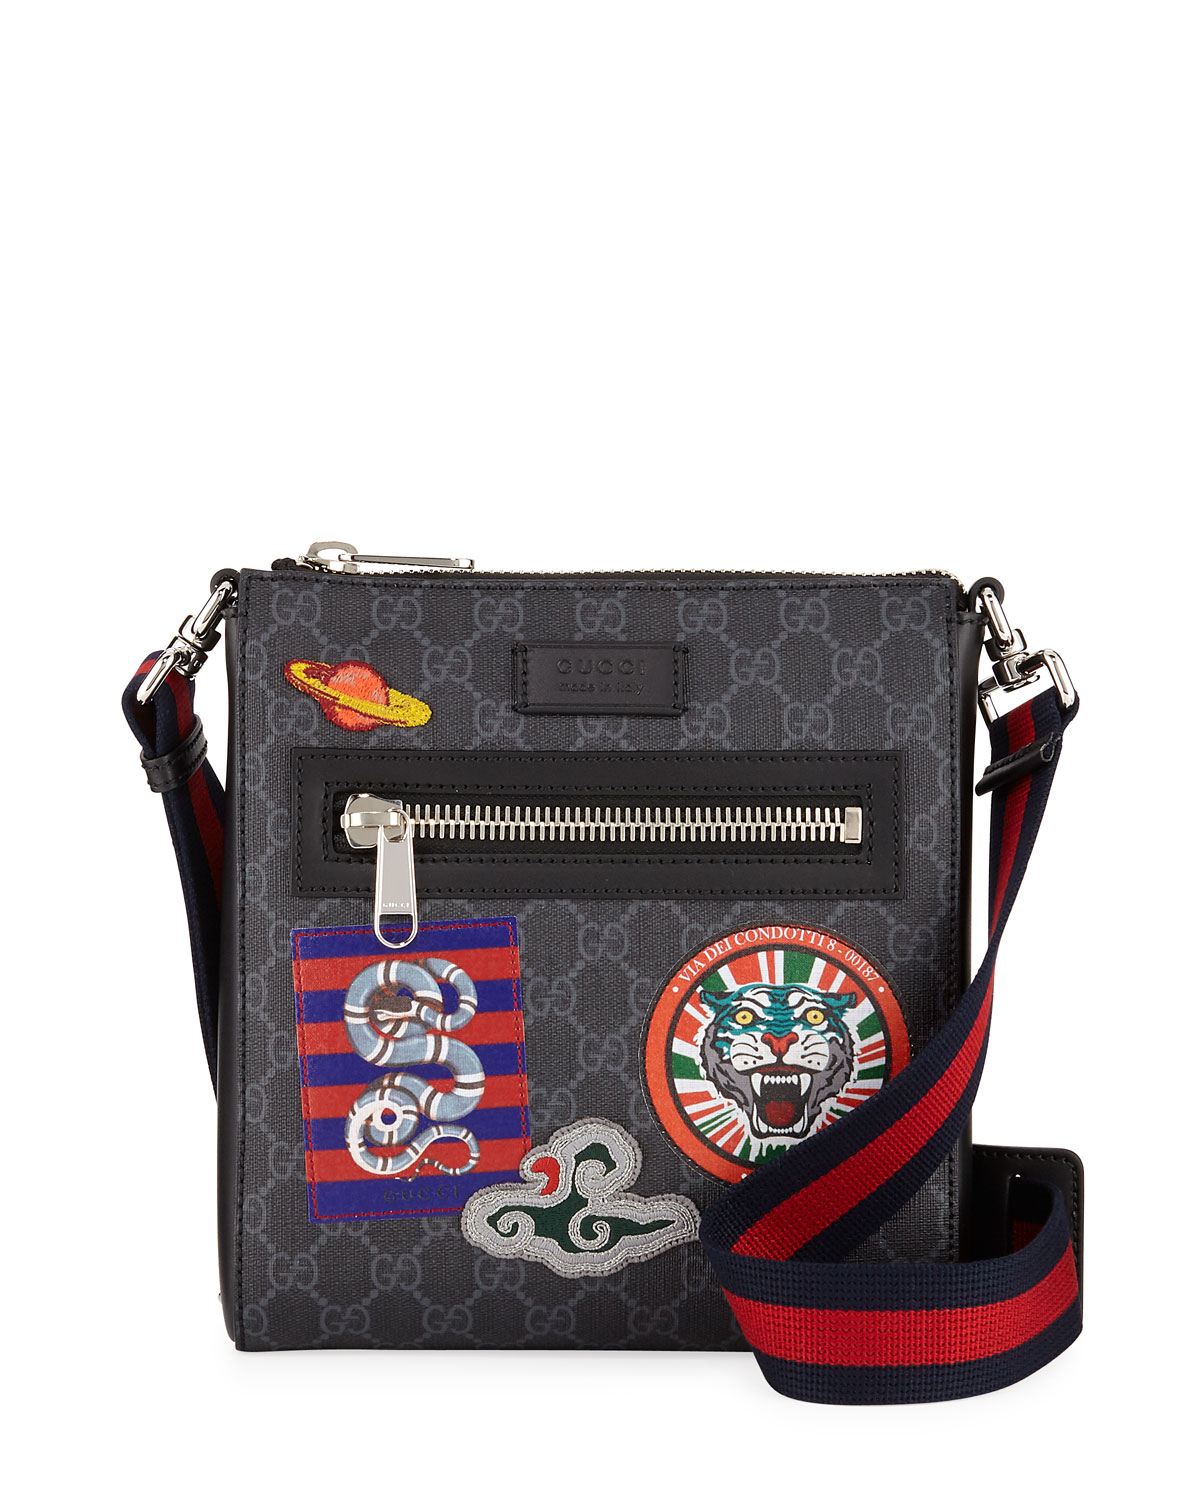 58f21be7b37ef3 Gucci Men's GG Supreme Patches Messenger Bag | Neiman Marcus